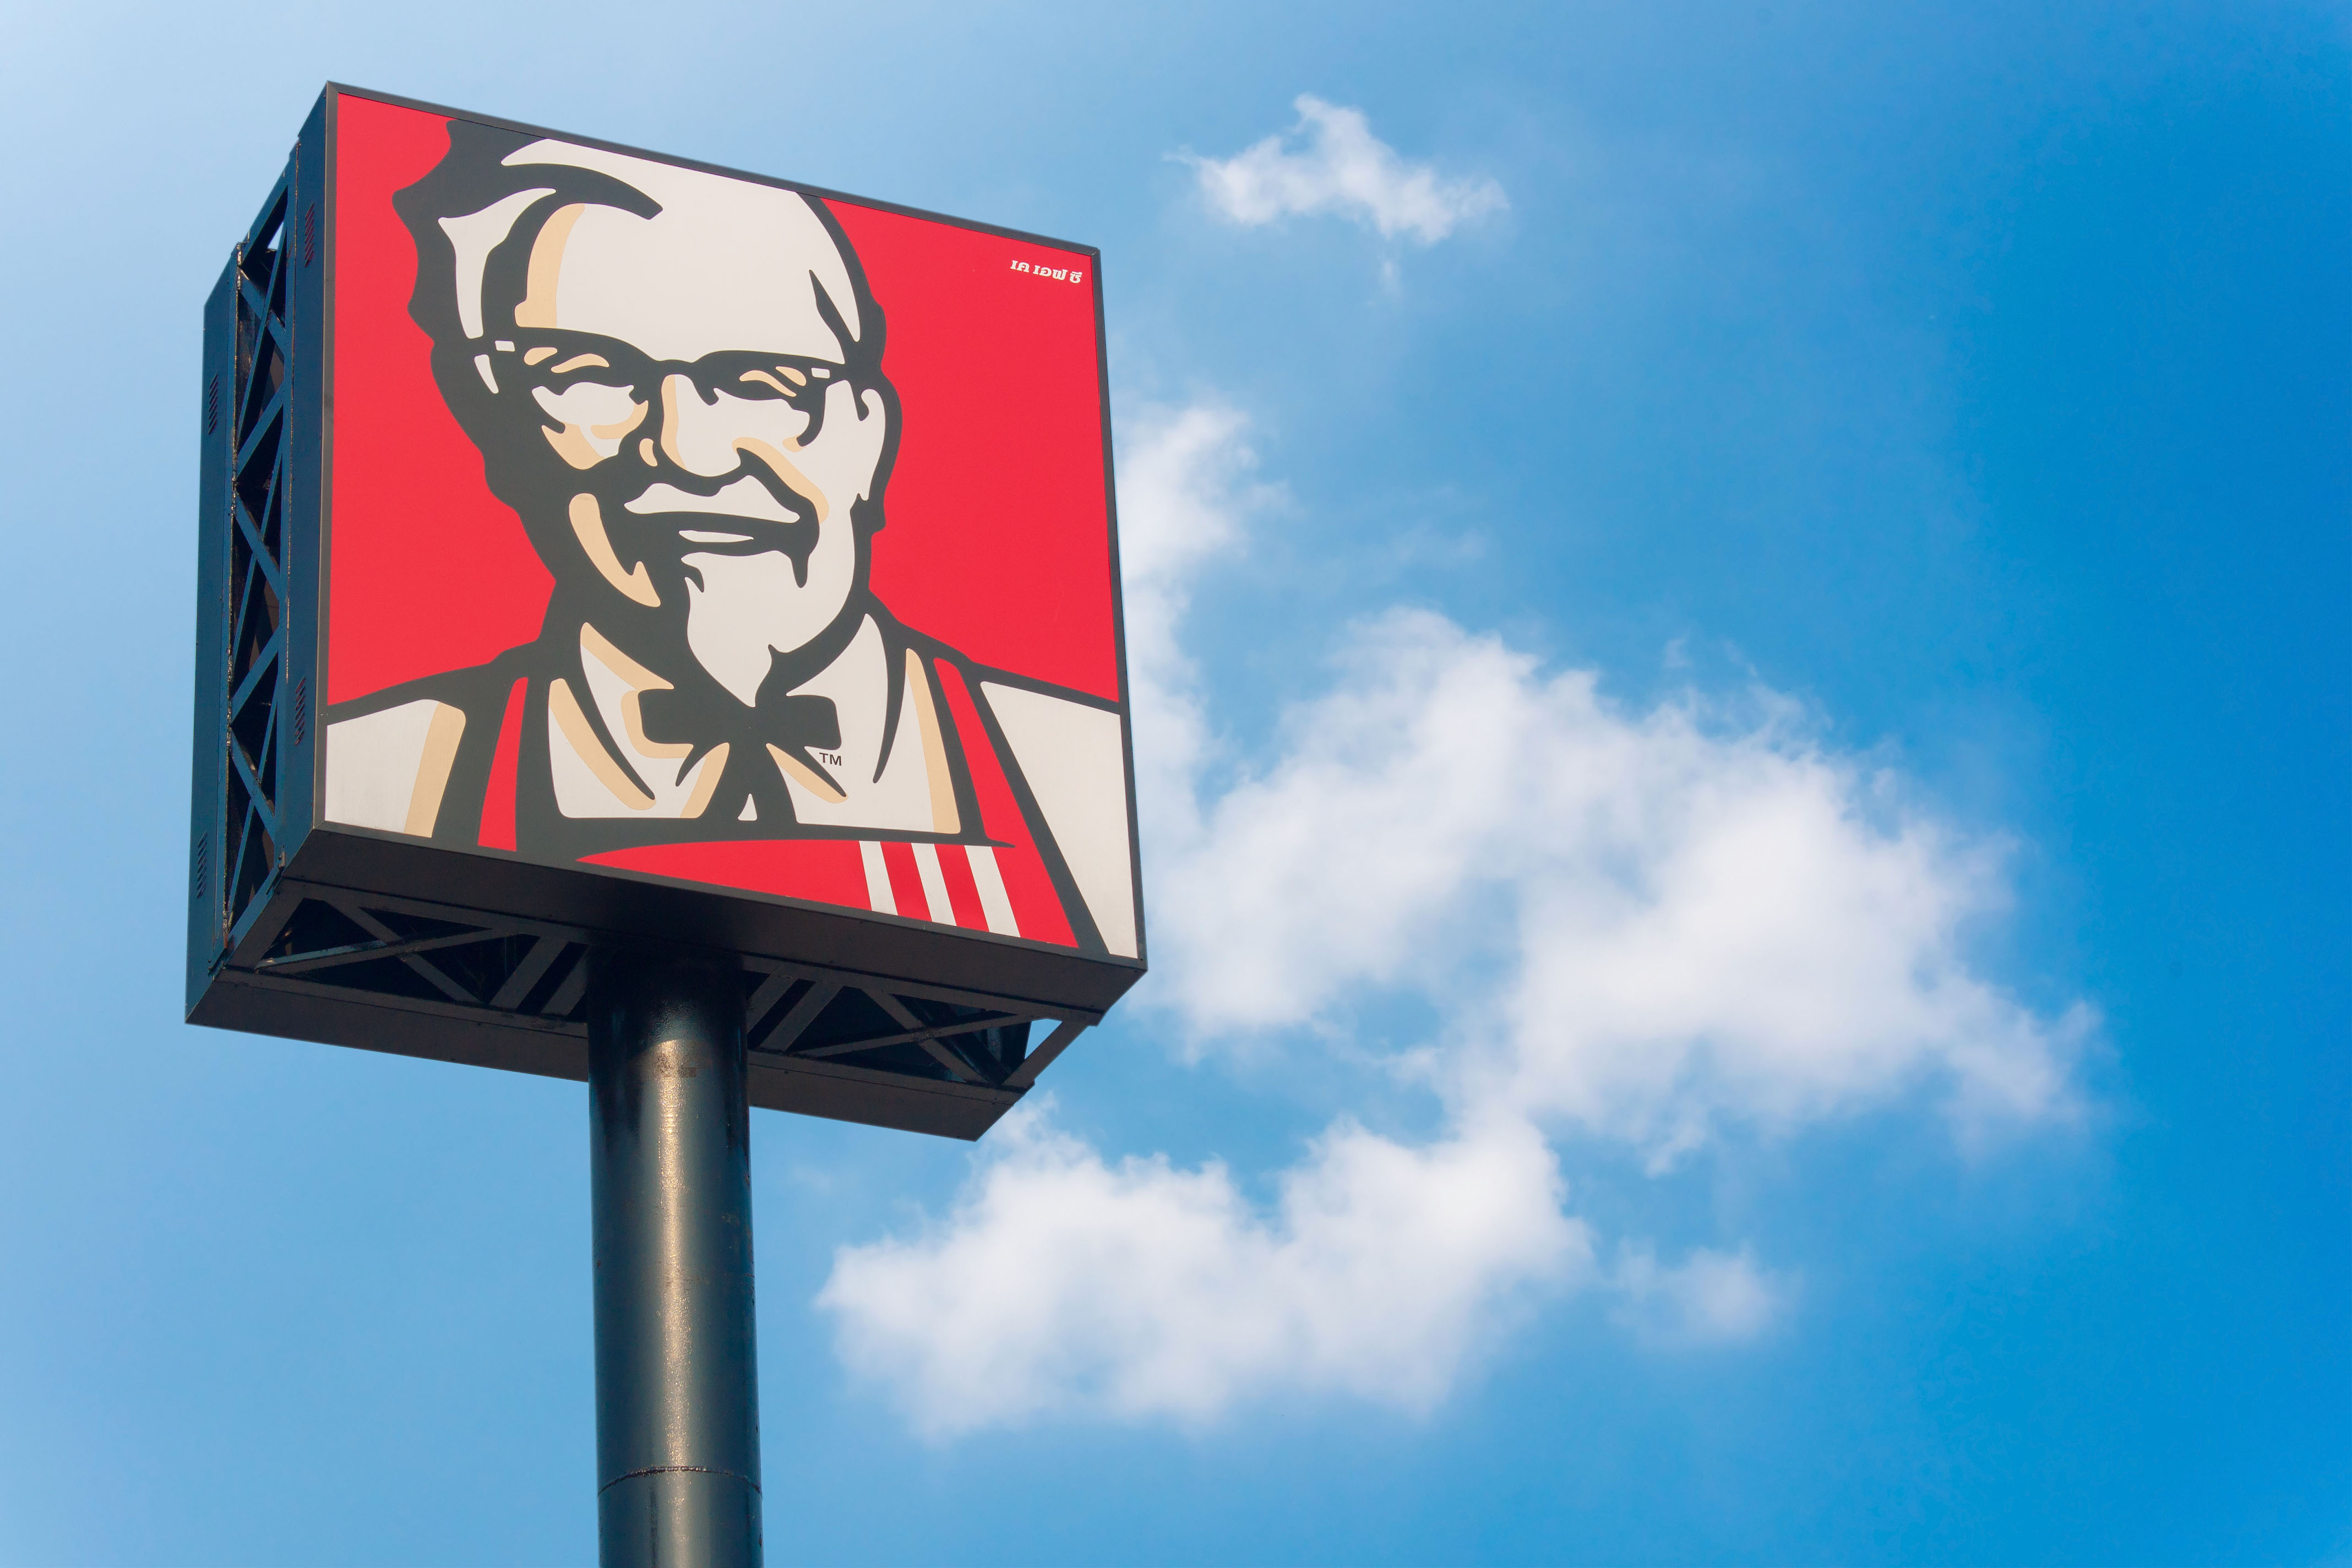 KFC sign with photo of the Colonel